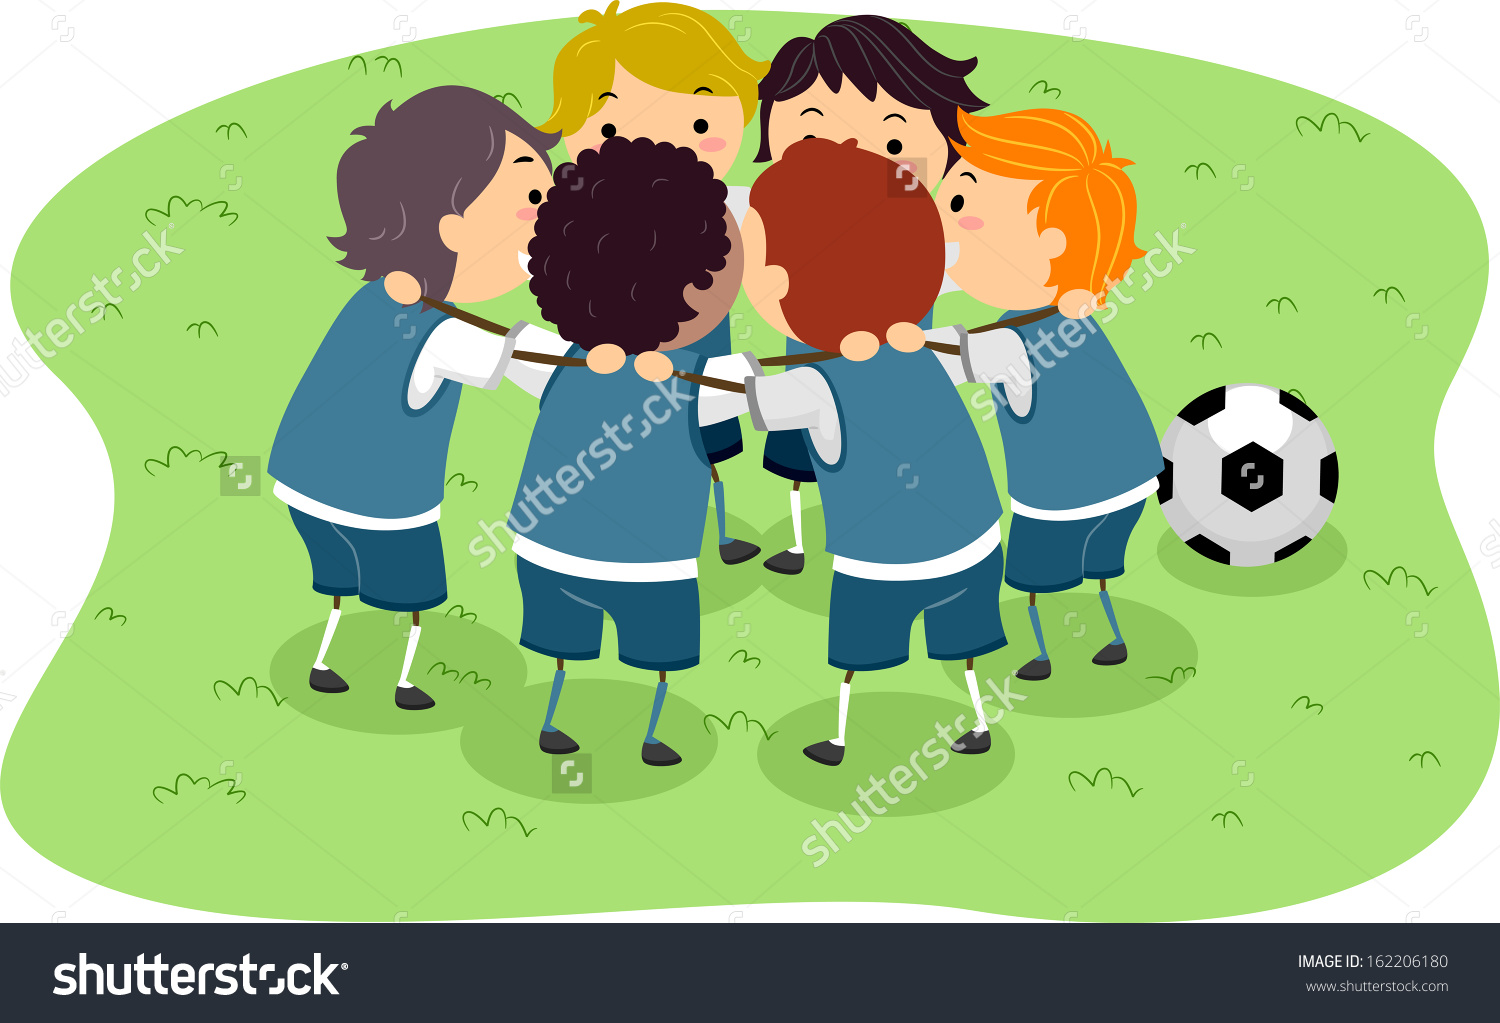 Illustration Little Boys Soccer Game Huddled Stock Vector.